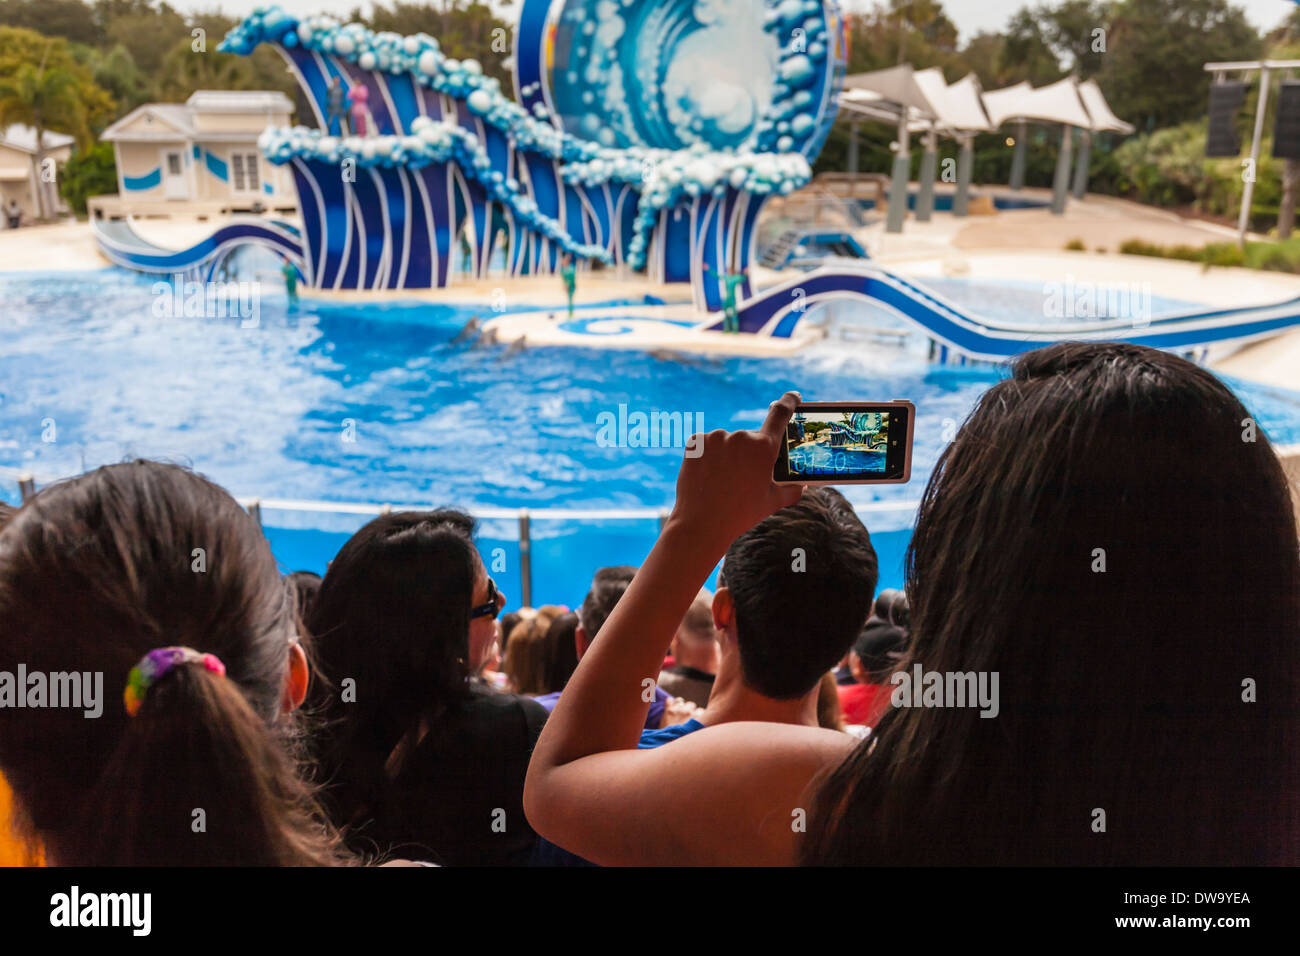 Park guest taking pictures with cell phone camera at the Blue Horizons show in SeaWorld, Orlando - Stock Image